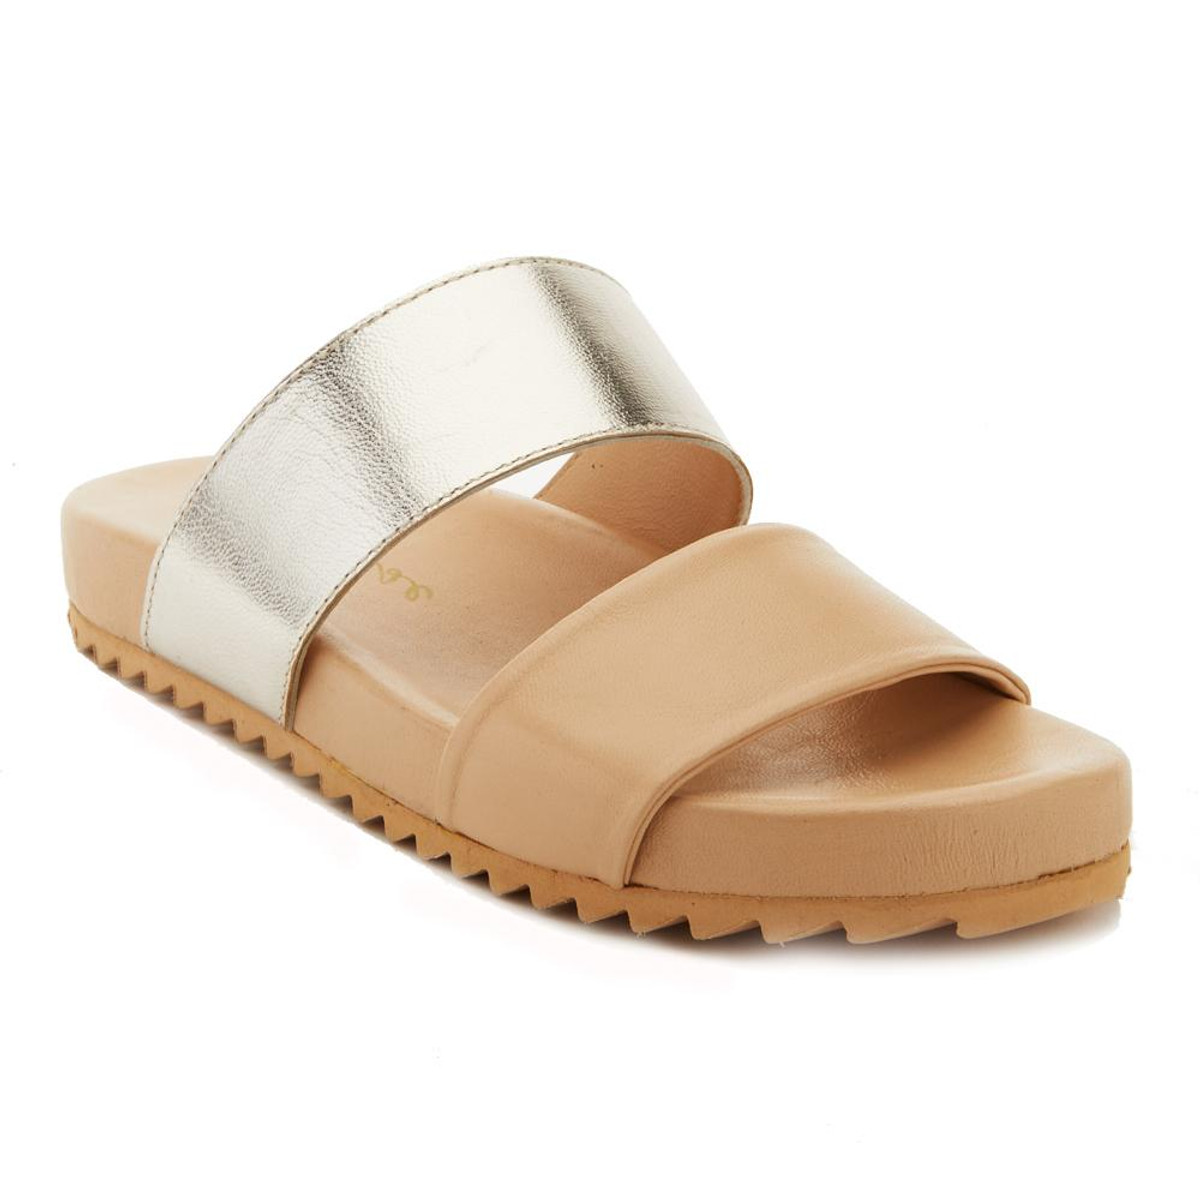 MATISSE HUNTLEY SLIDE SANDAL